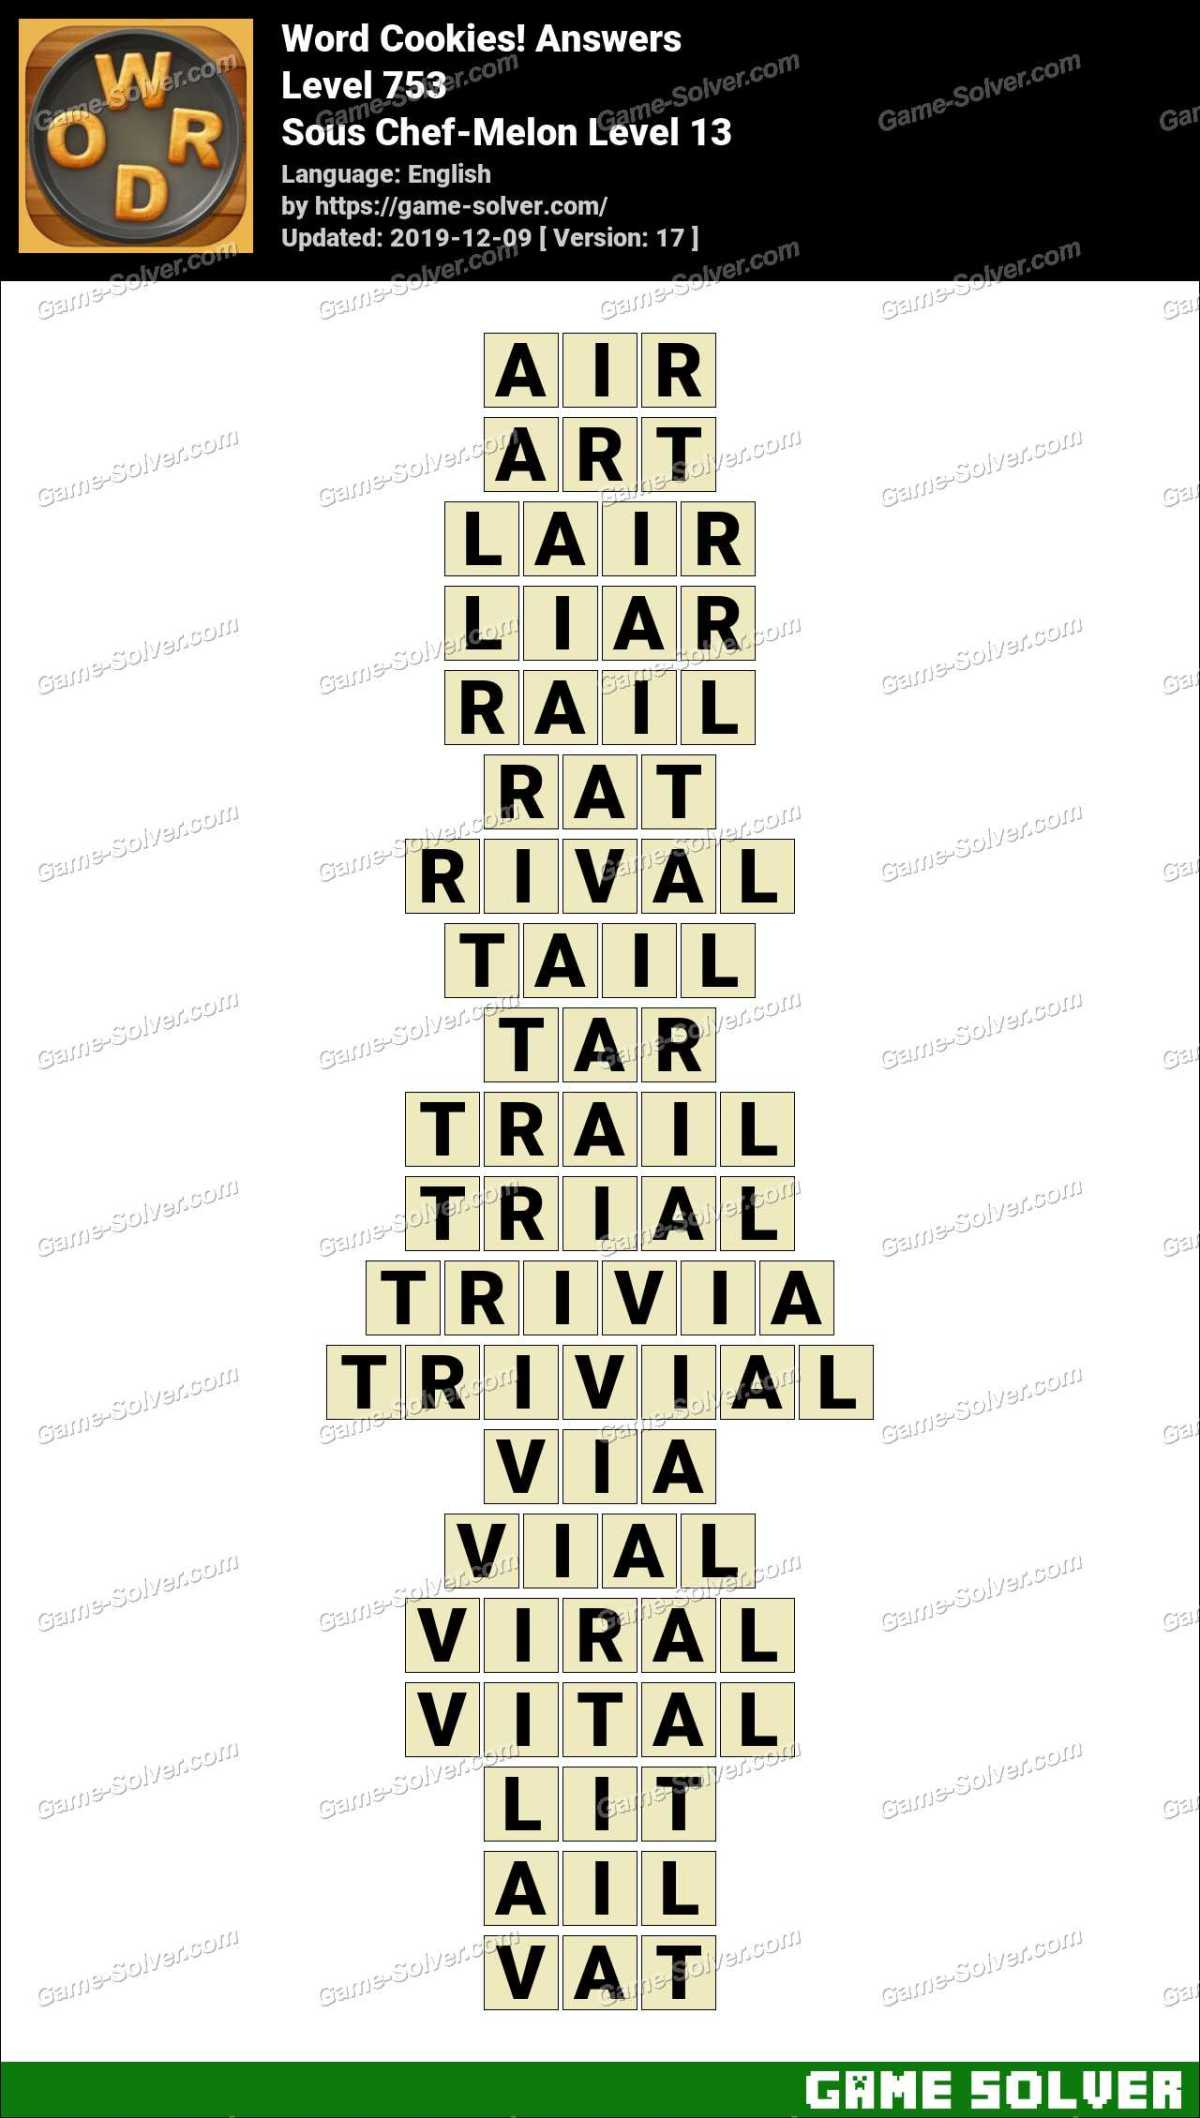 Word Cookies Sous Chef-Melon Level 13 Answers